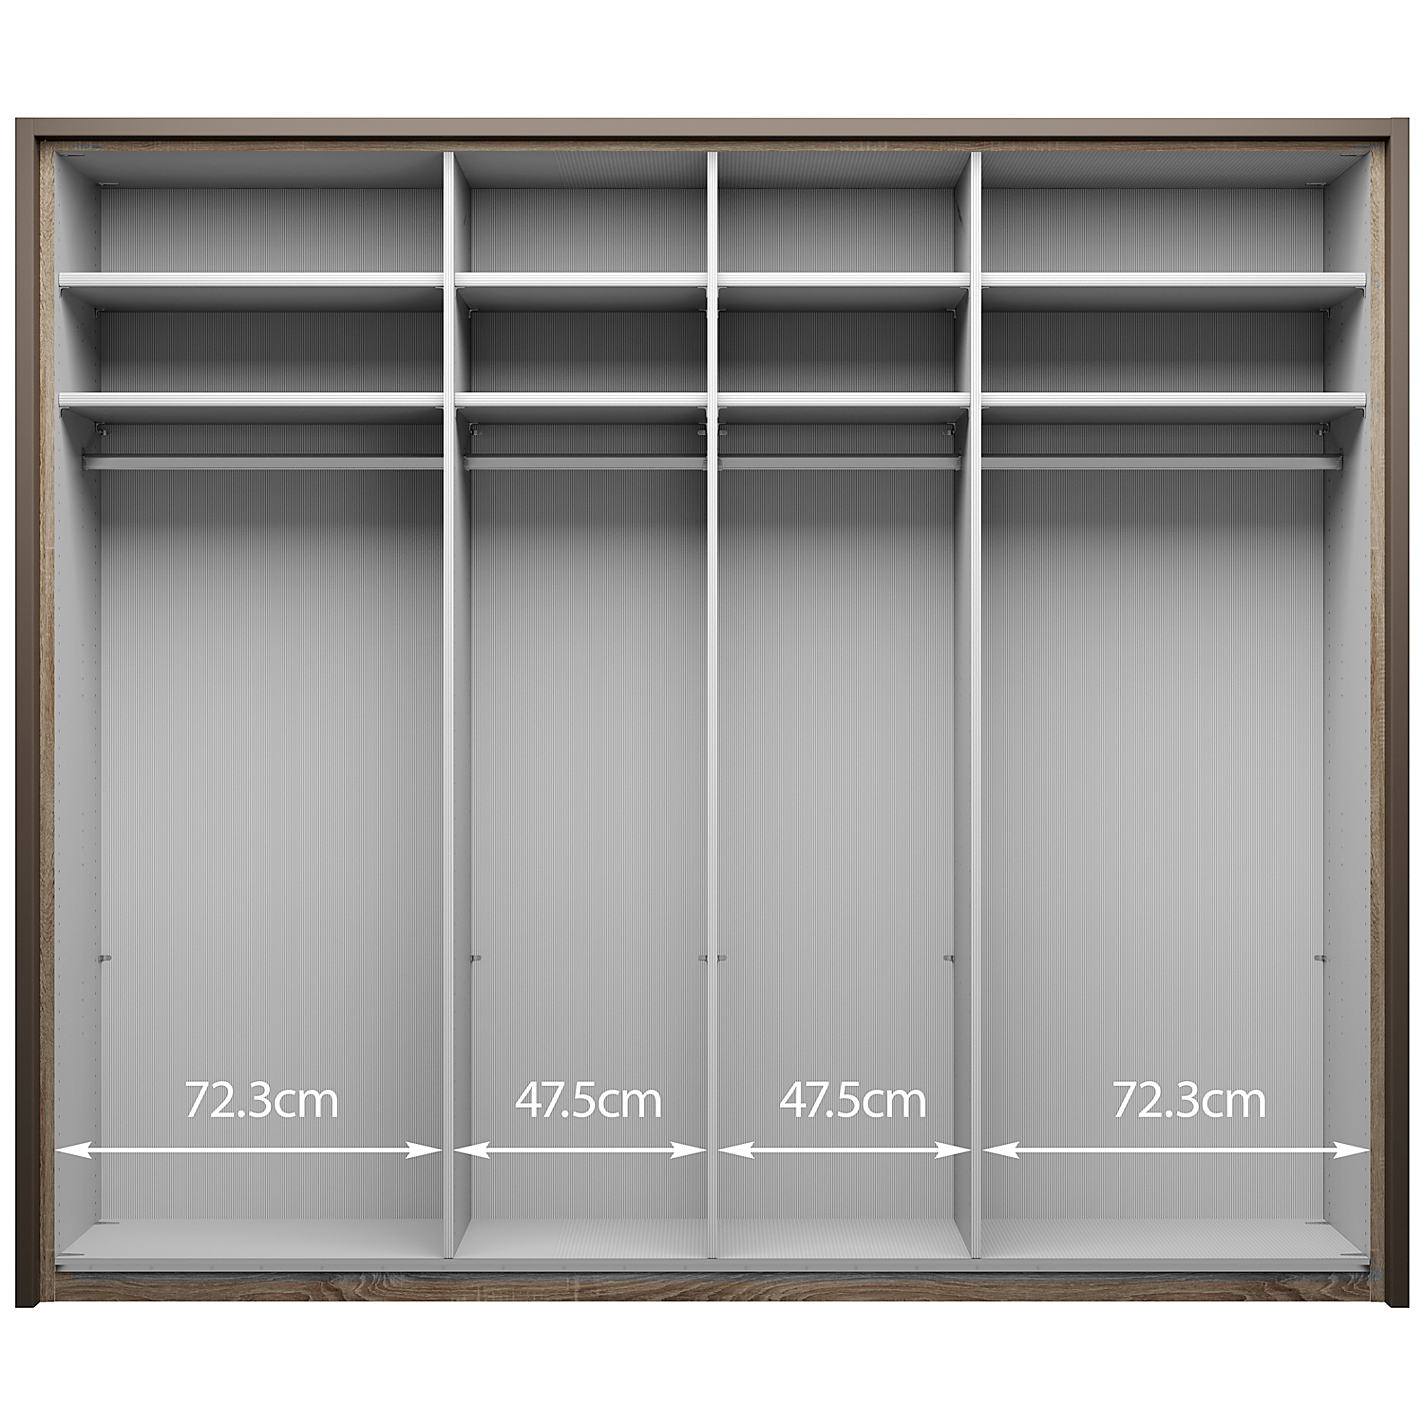 Bedroom Furniture John Lewis buy john lewis girona 250cm wardrobe with glass or mirrored